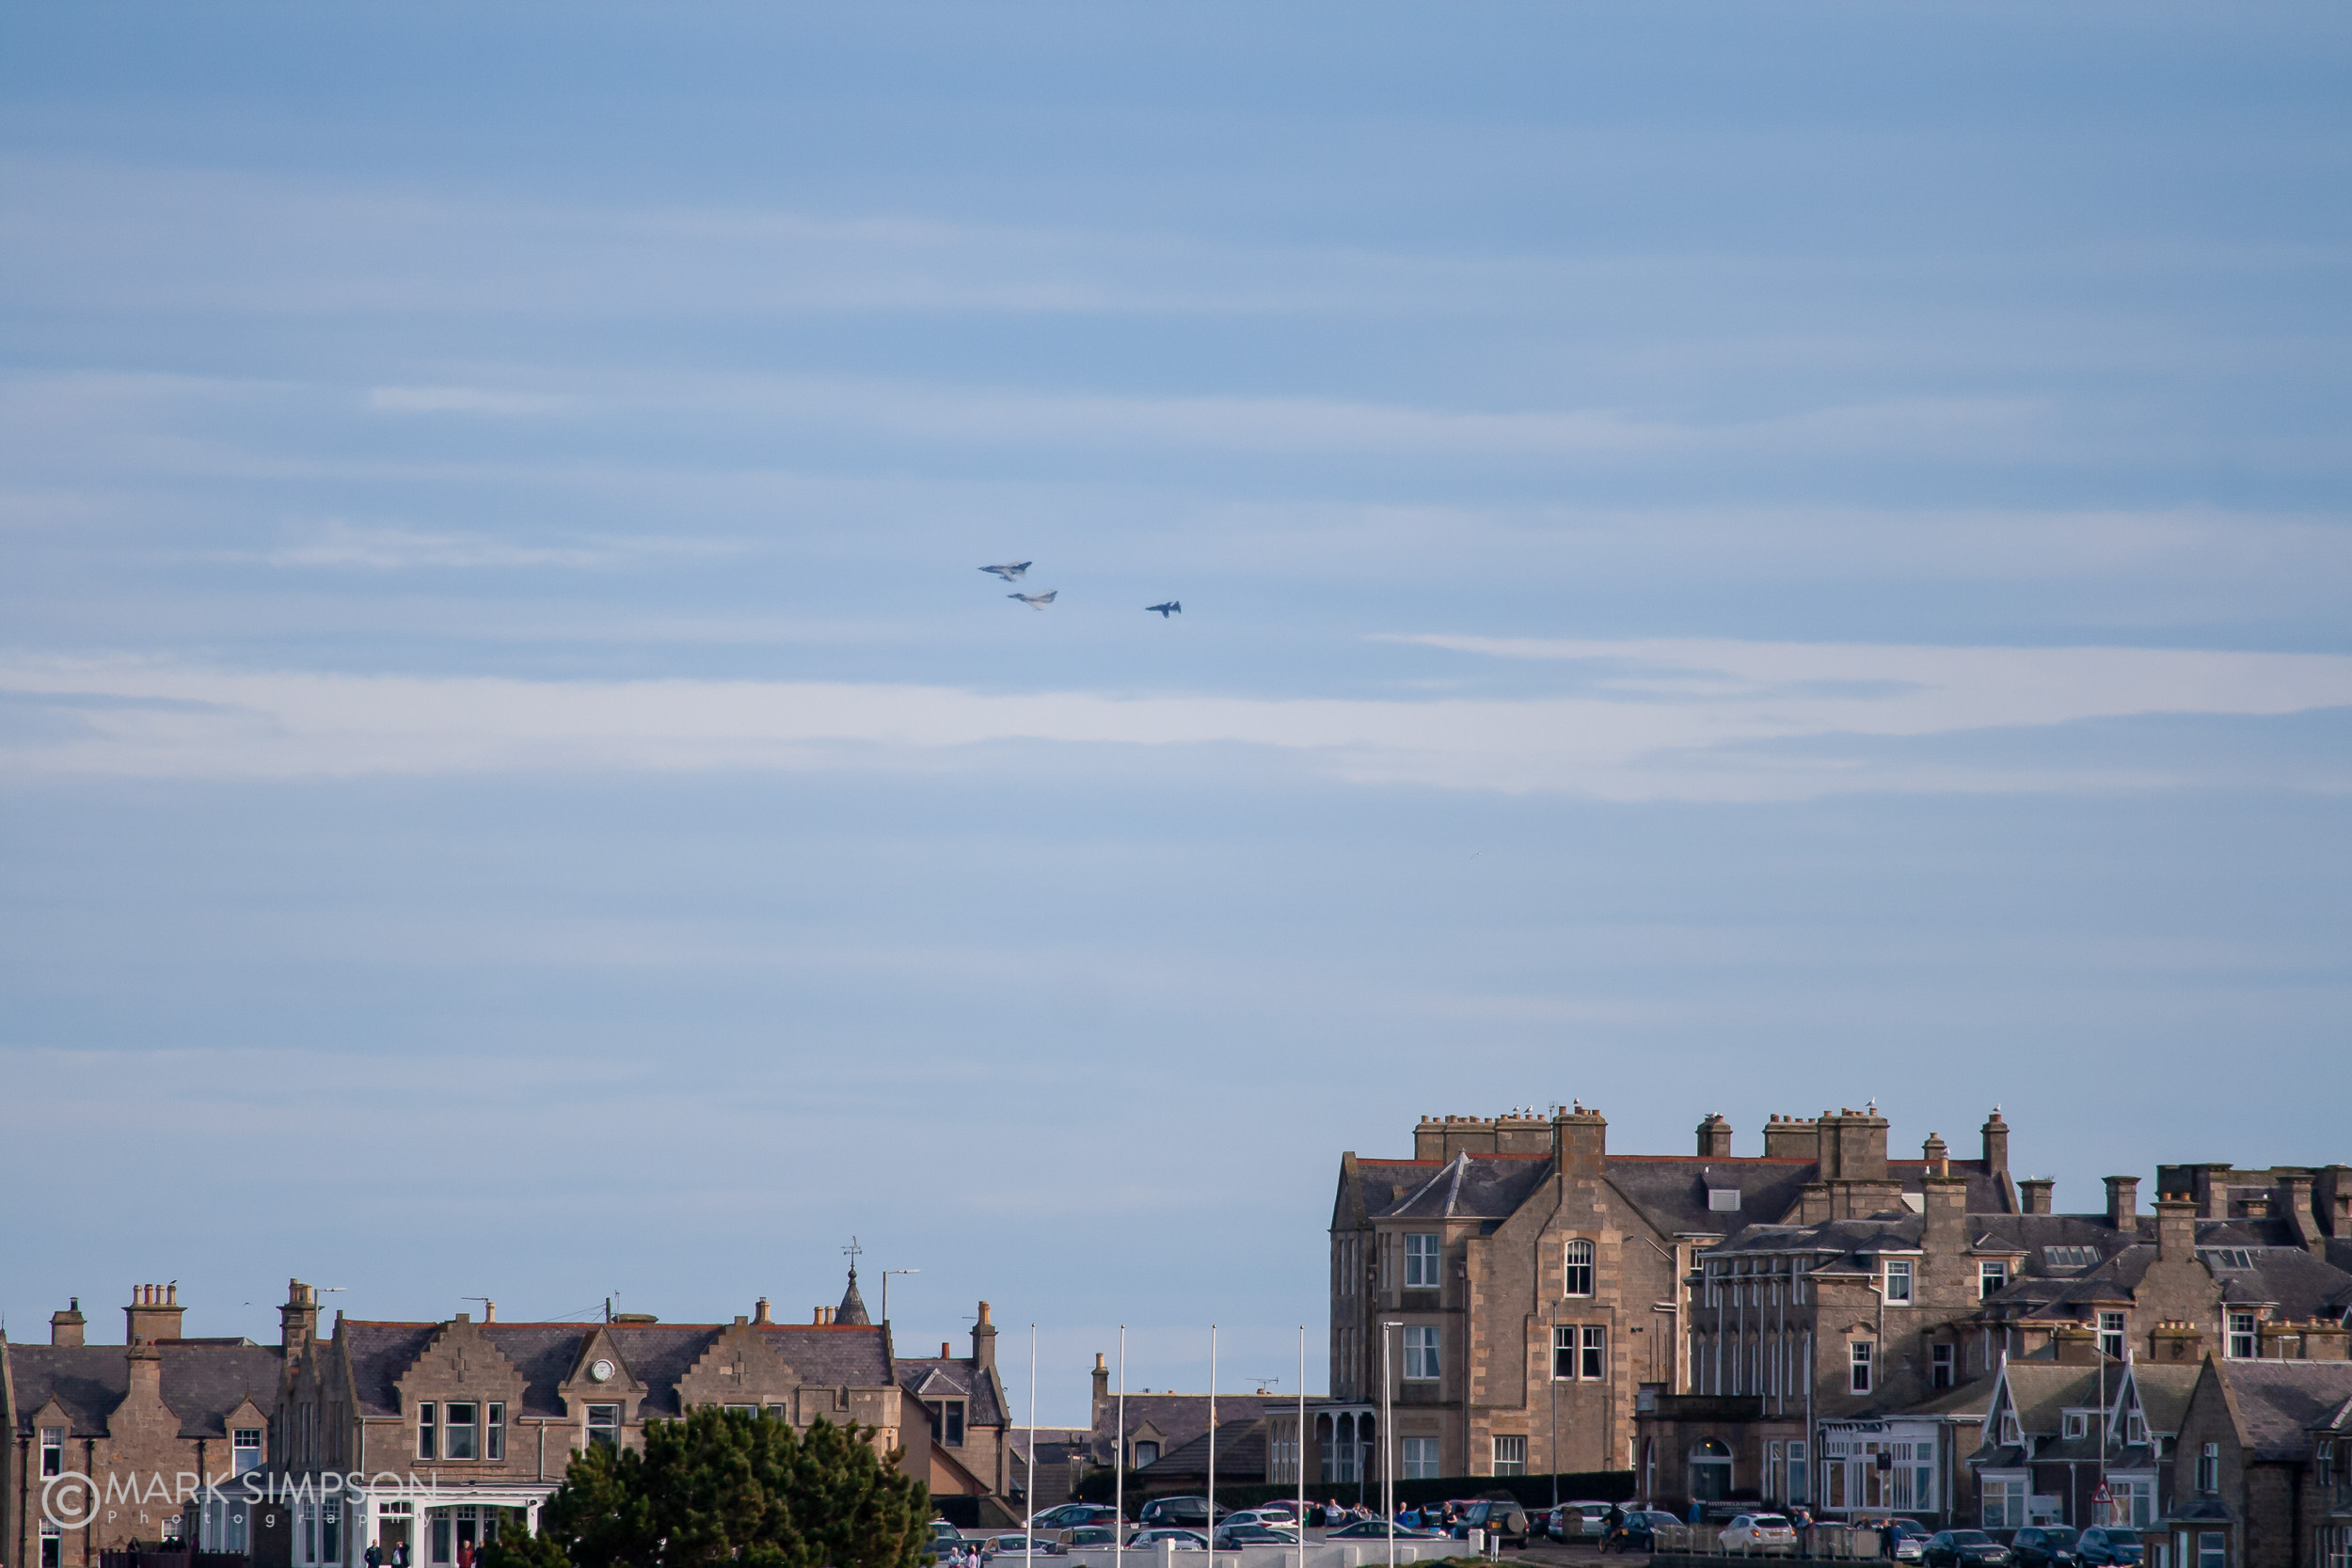 No.9 Squadron Typhoon with Tornado ZG775 and Hawk XX198 over Lossiemouth.